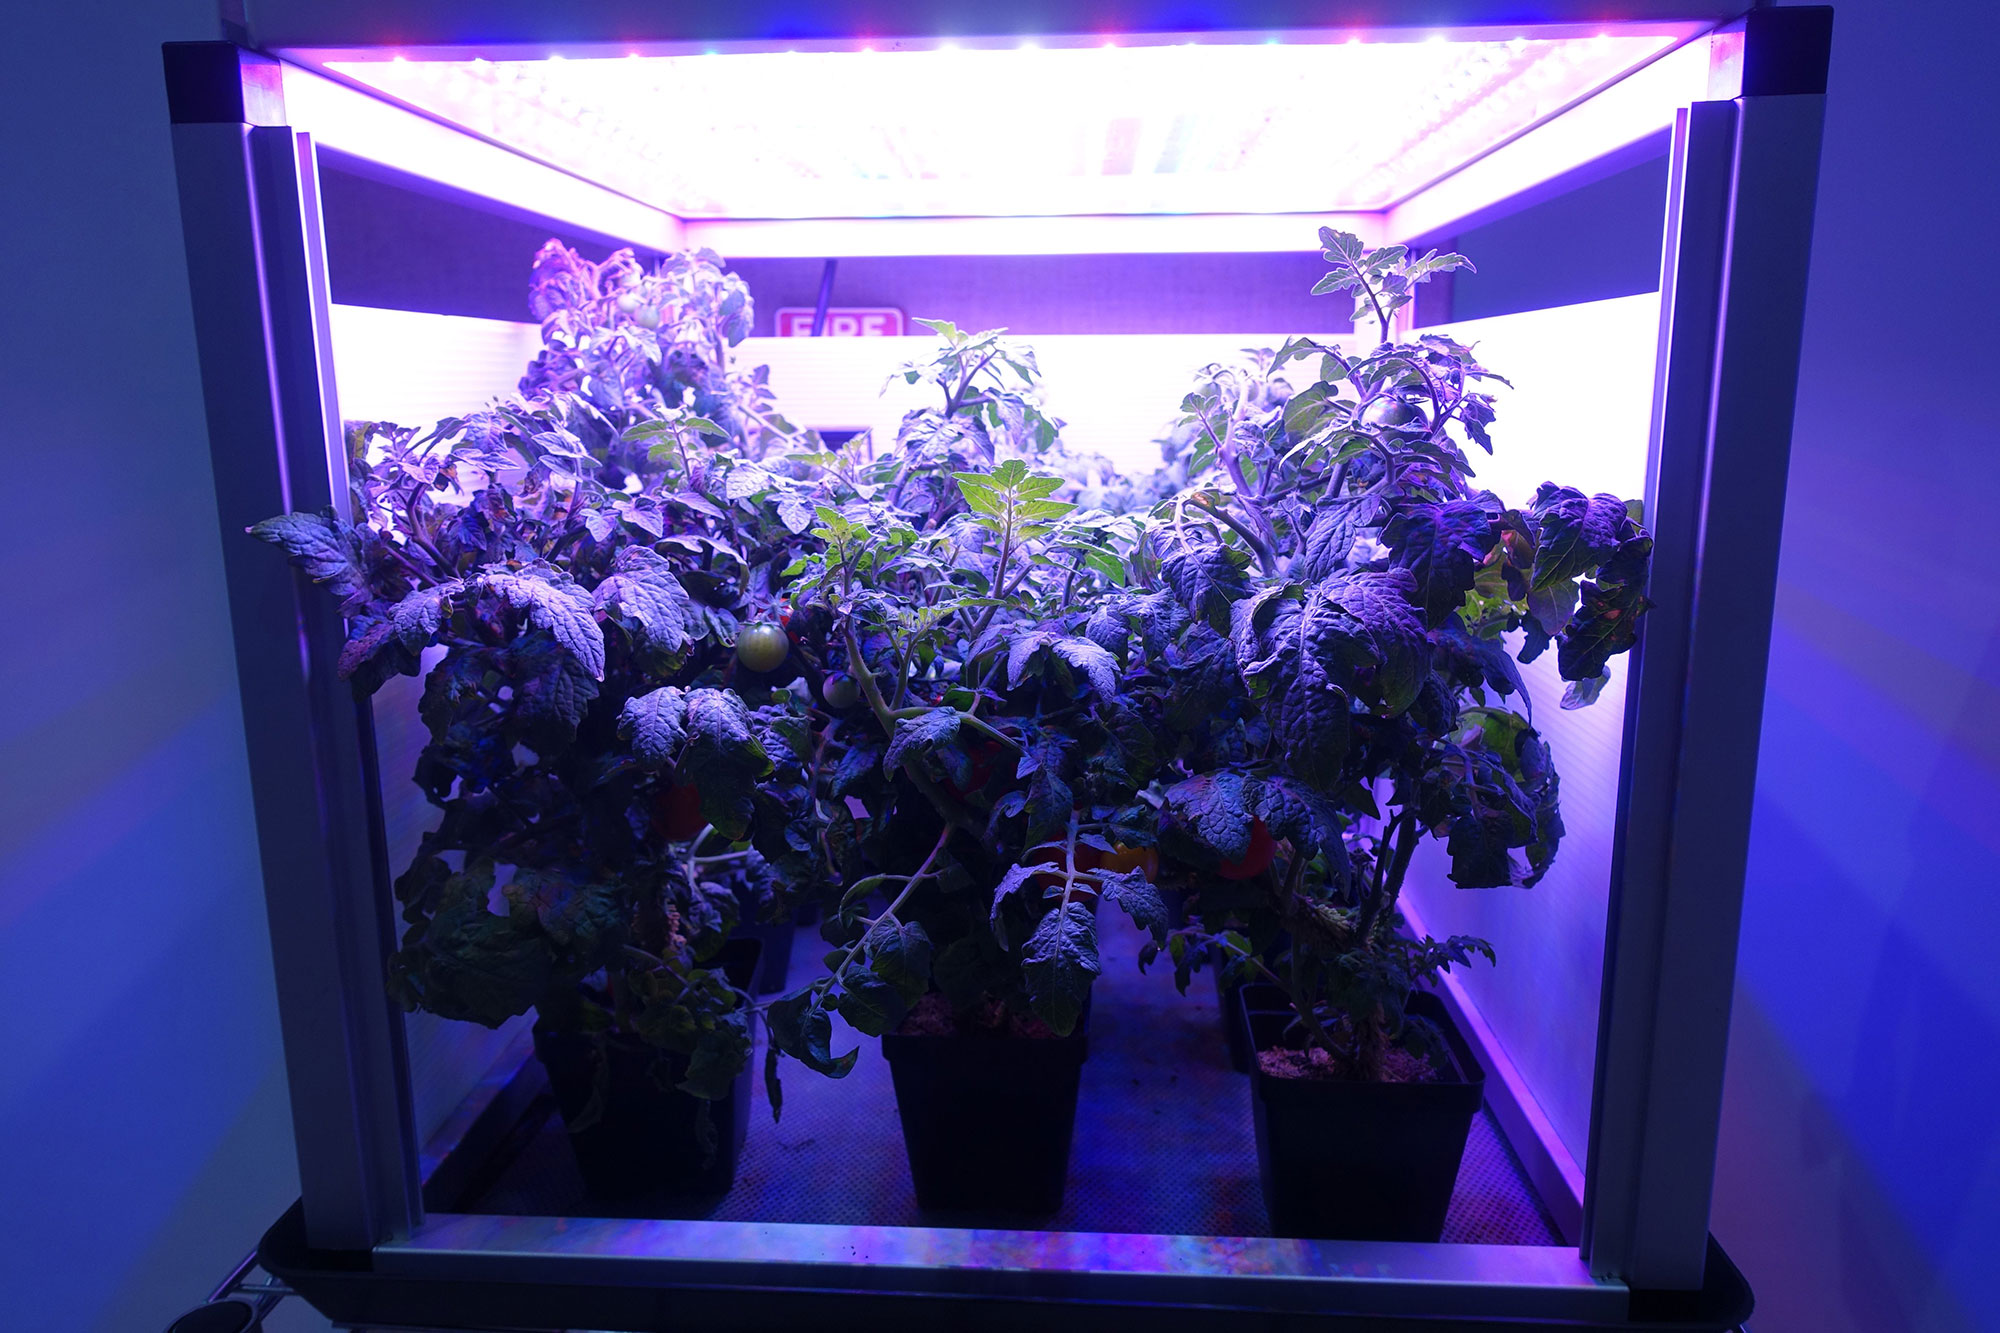 DOUNIAMAG-US-SCIENCE-SPACE-EDUCATION-HORTICULTURE